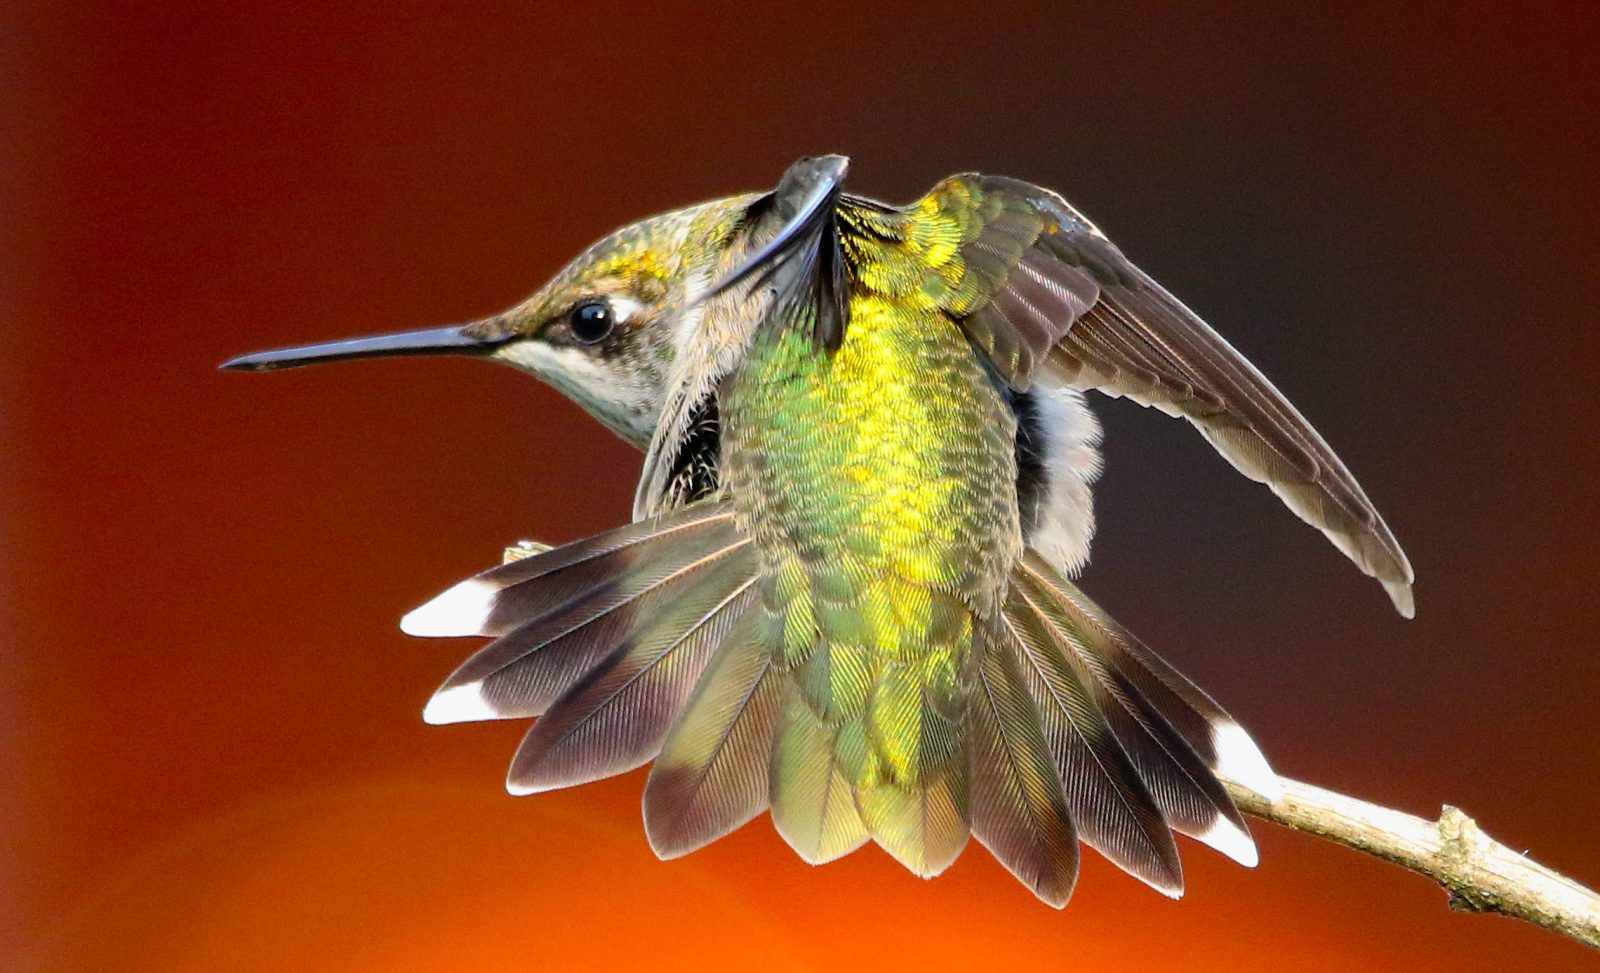 Hummer in attack mode!